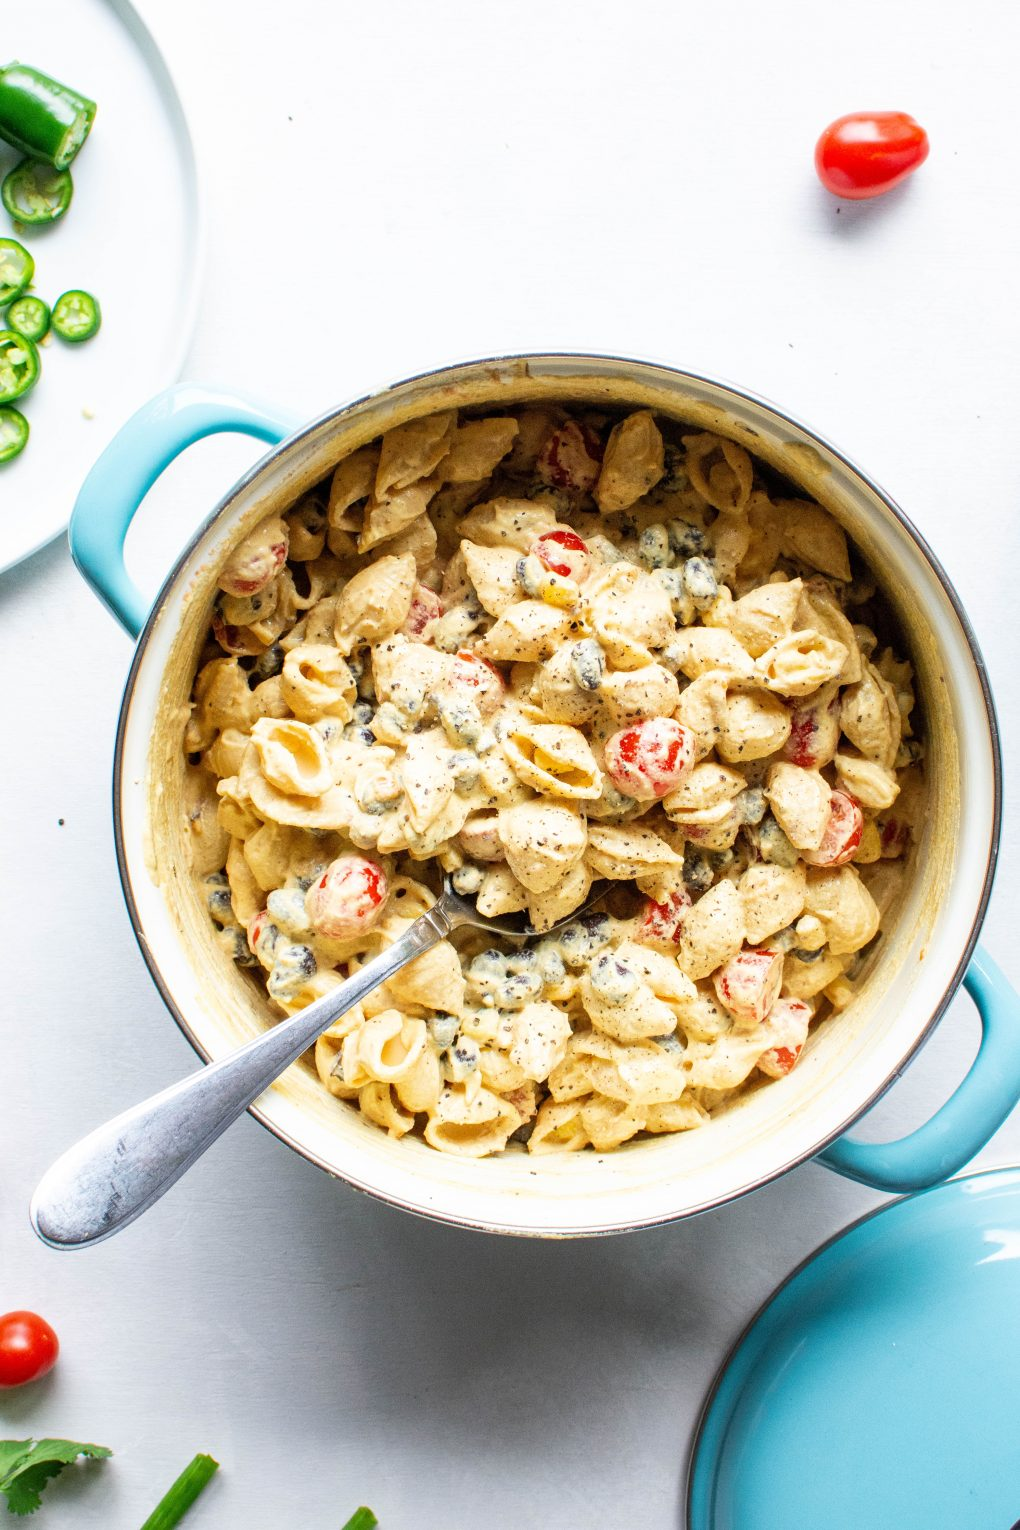 A blue pot of pasta, corn, black beans, halved cherry tomatoes, and cashew cheese sauce all mixed together surrounded by cherry tomatoes, green onions, and fresh herbs on a white background.